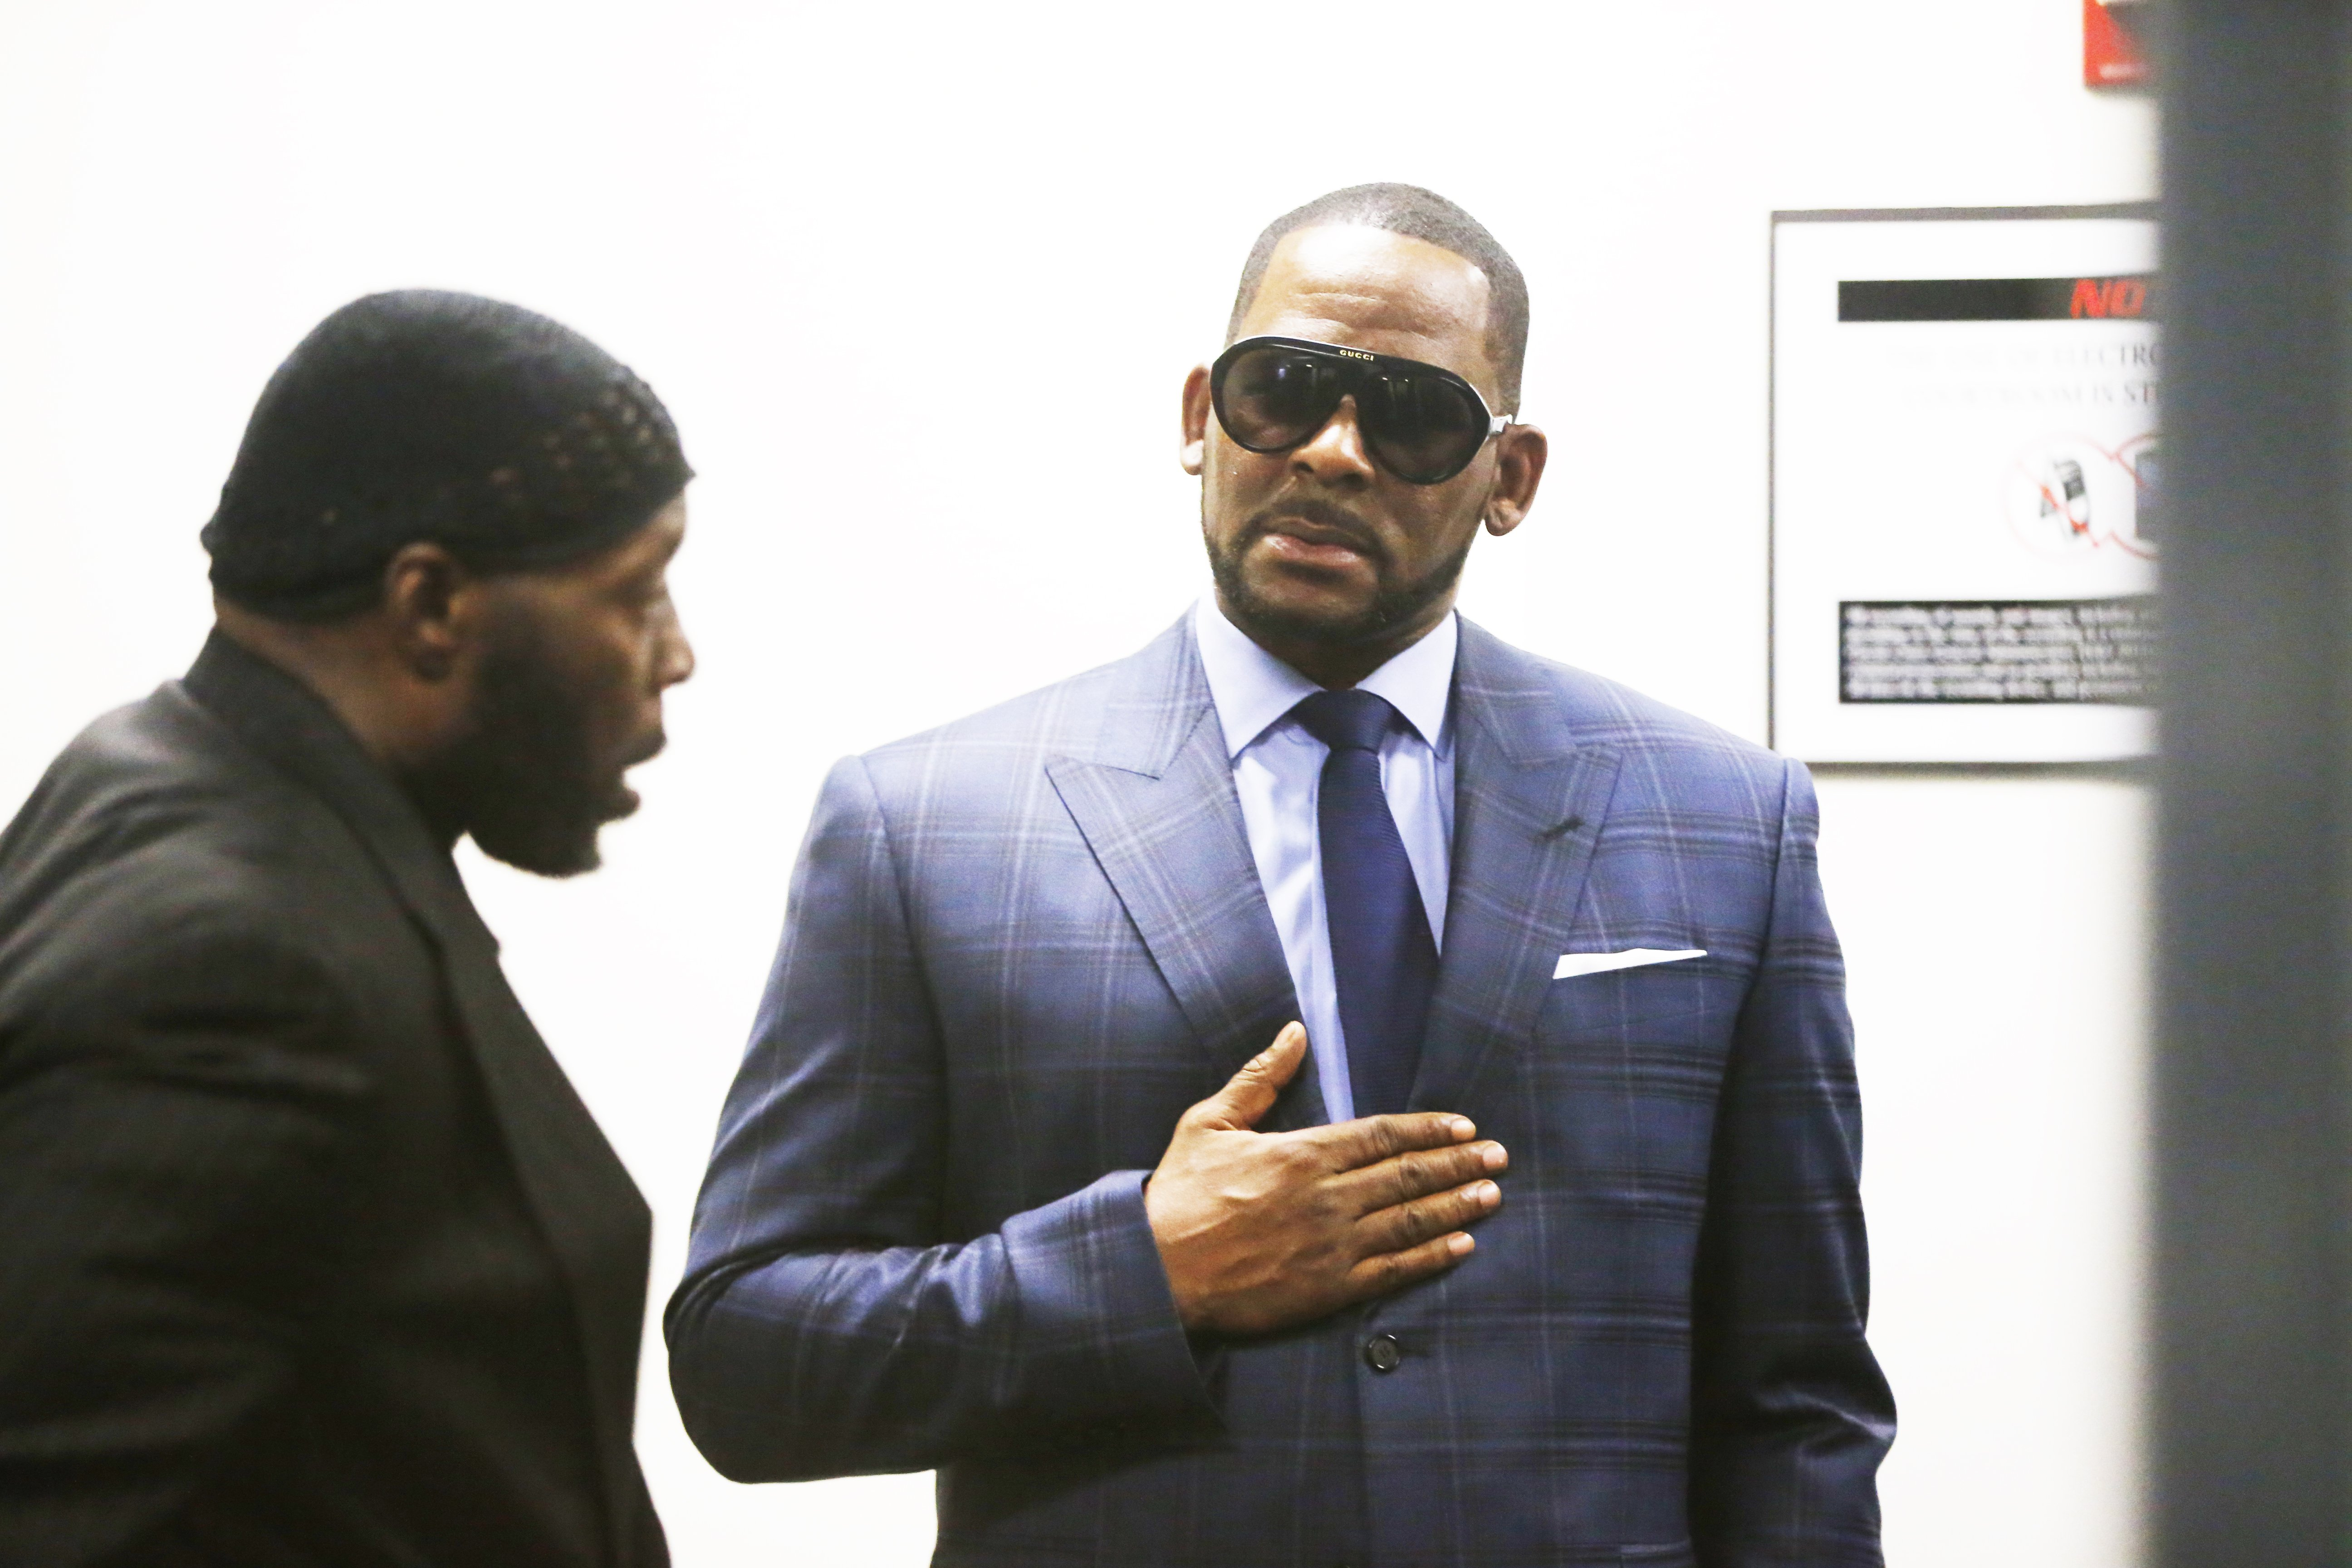 R. Kelly appears in family court over unpaid child support. March 9, 2019. | Photo: GettyImages/Global Images of Ukraine